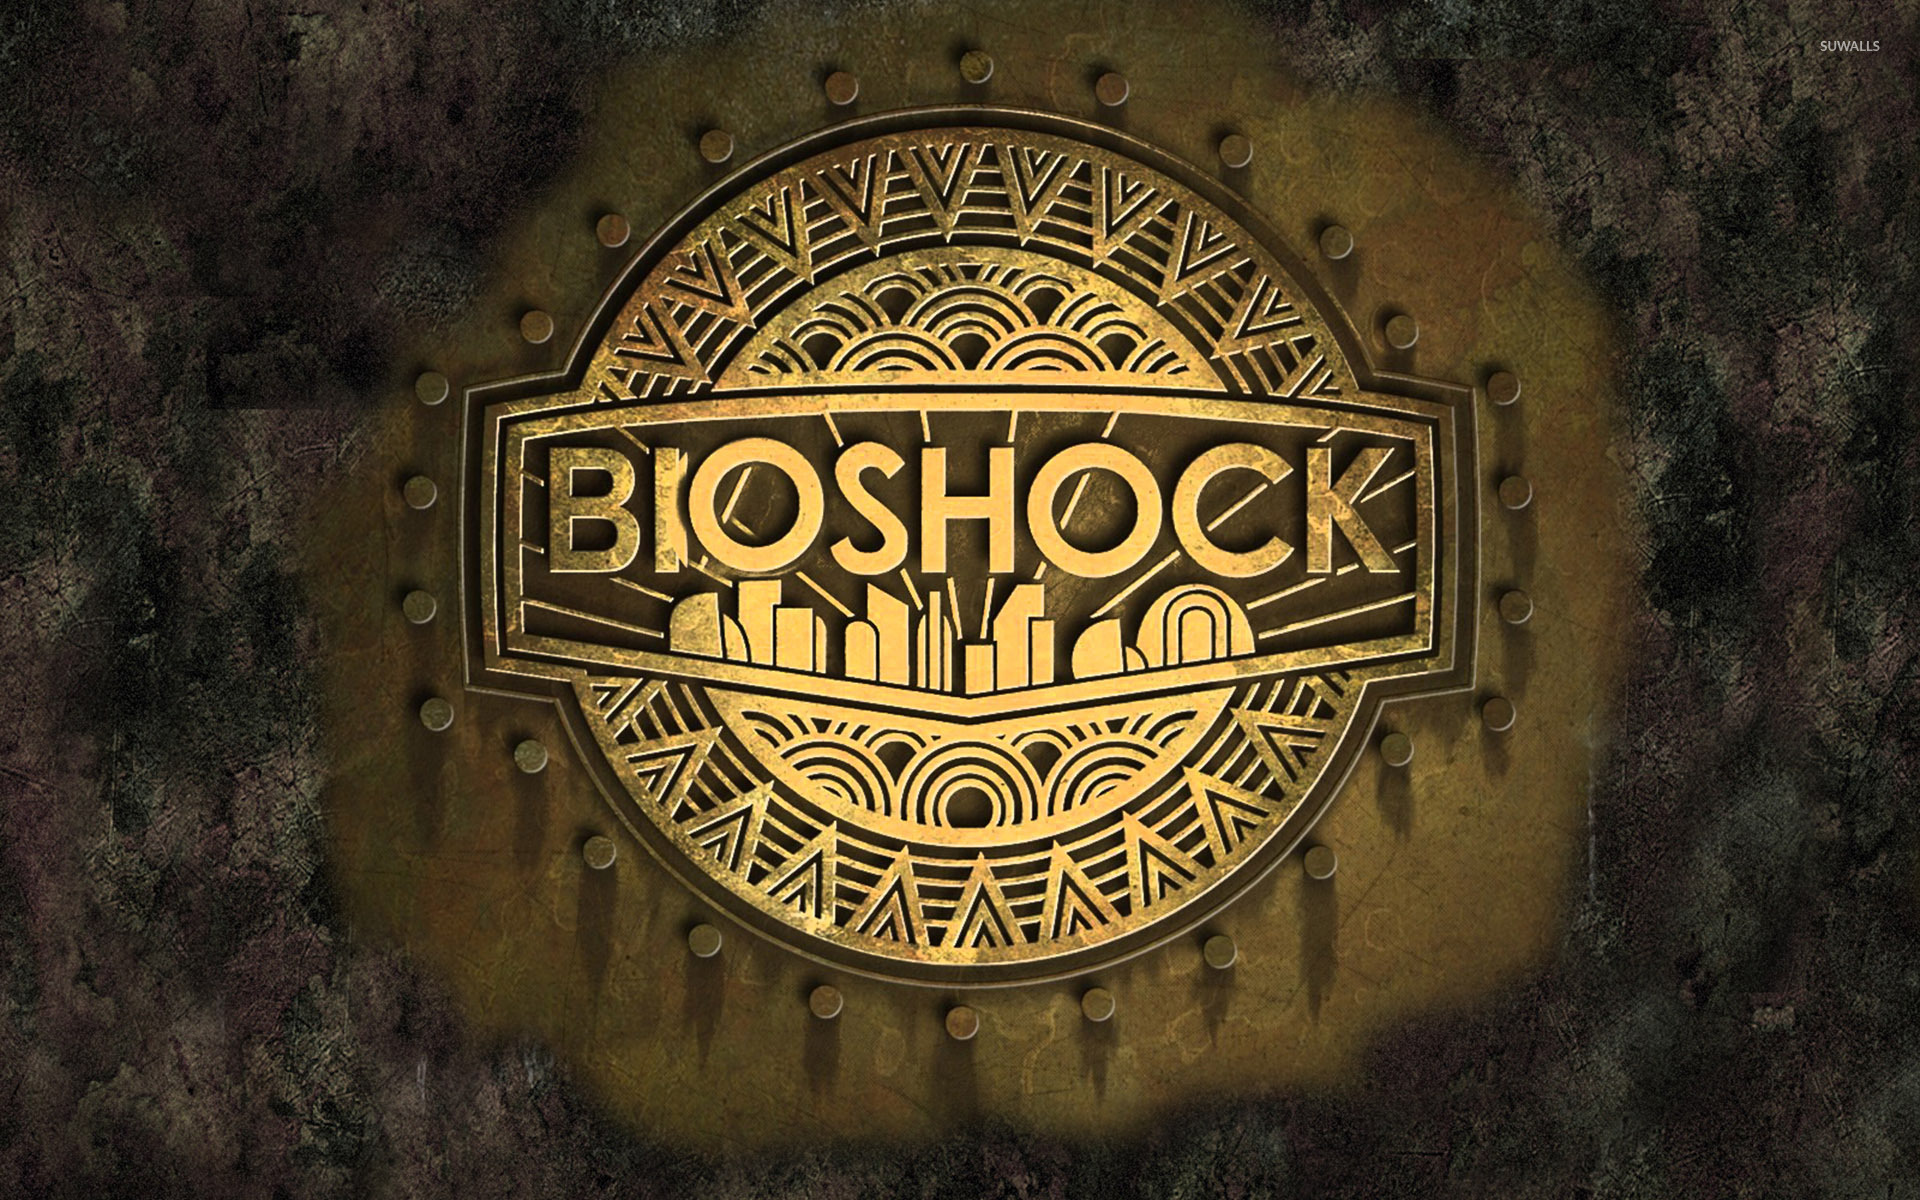 bioshock golden logo wallpaper game wallpapers 54143 star wars free vector star wars alliance logo vector